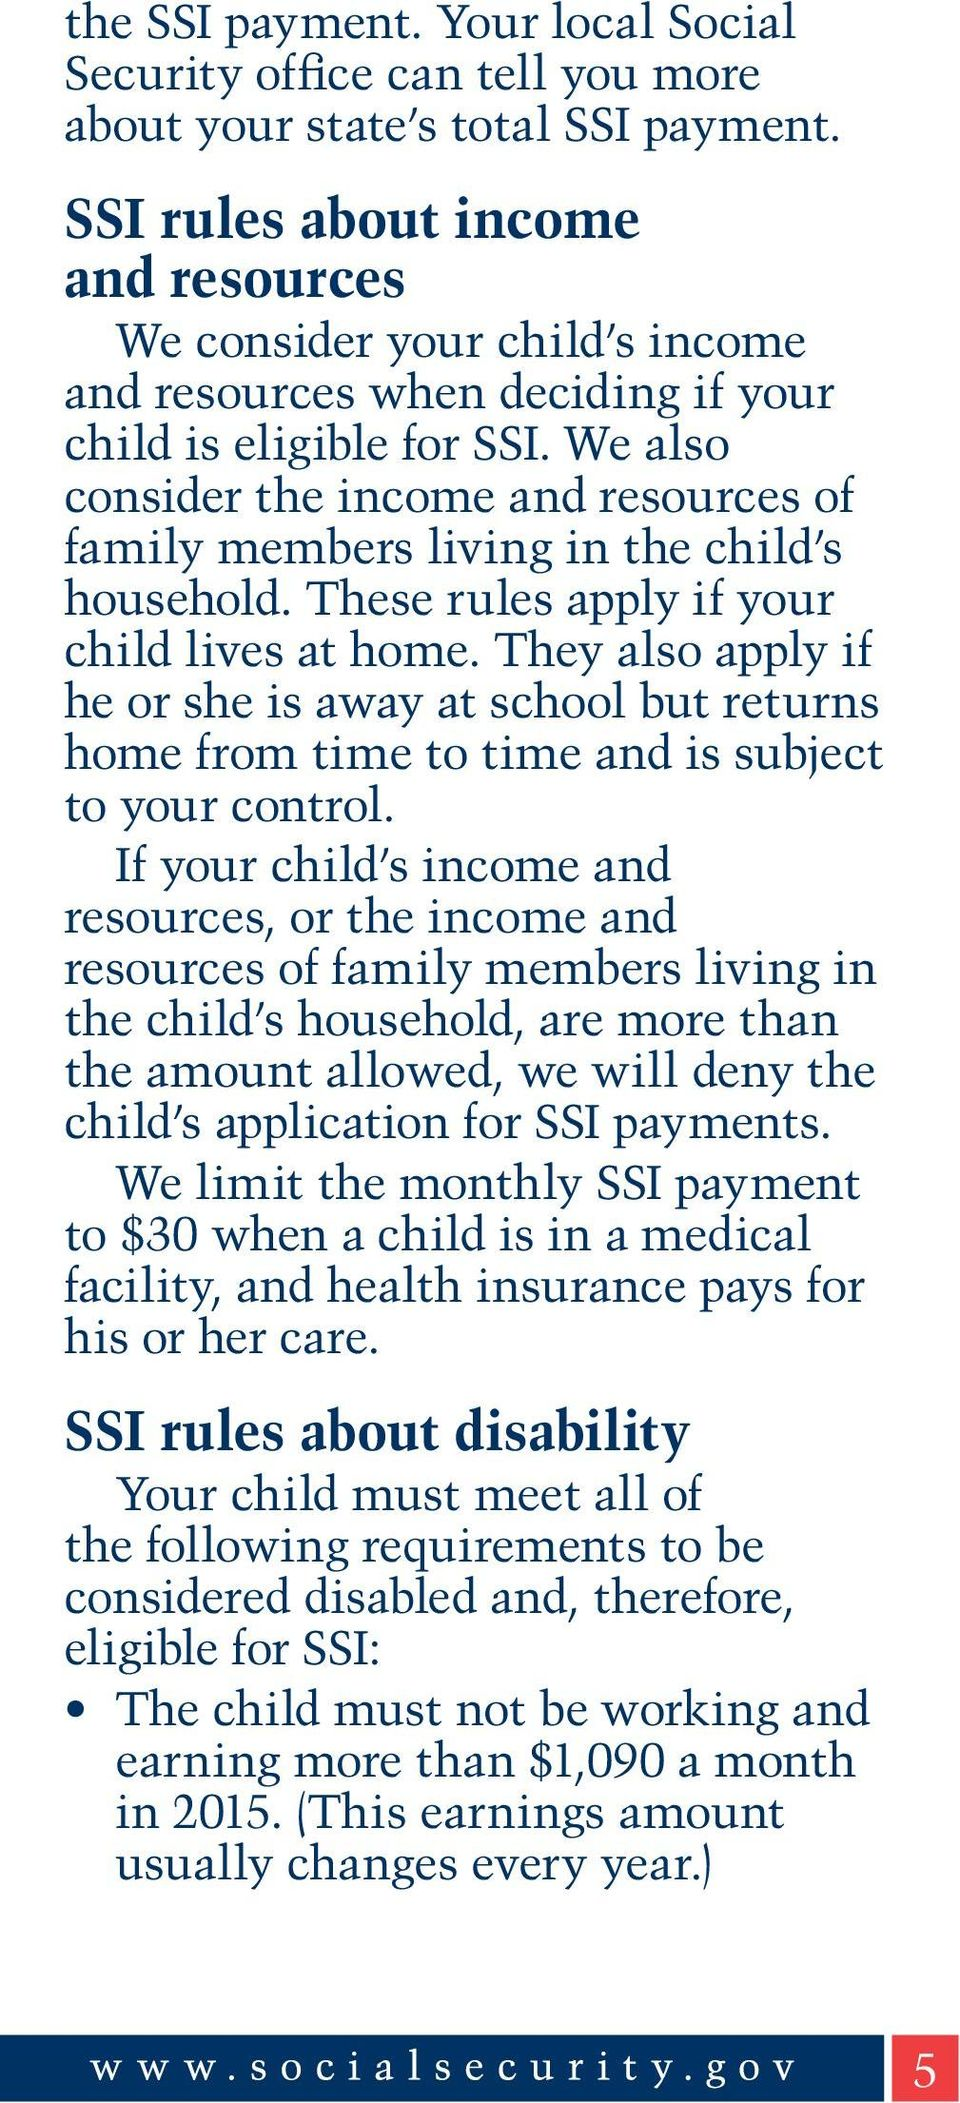 We also consider the income and resources of family members living in the child s household. These rules apply if your child lives at home.